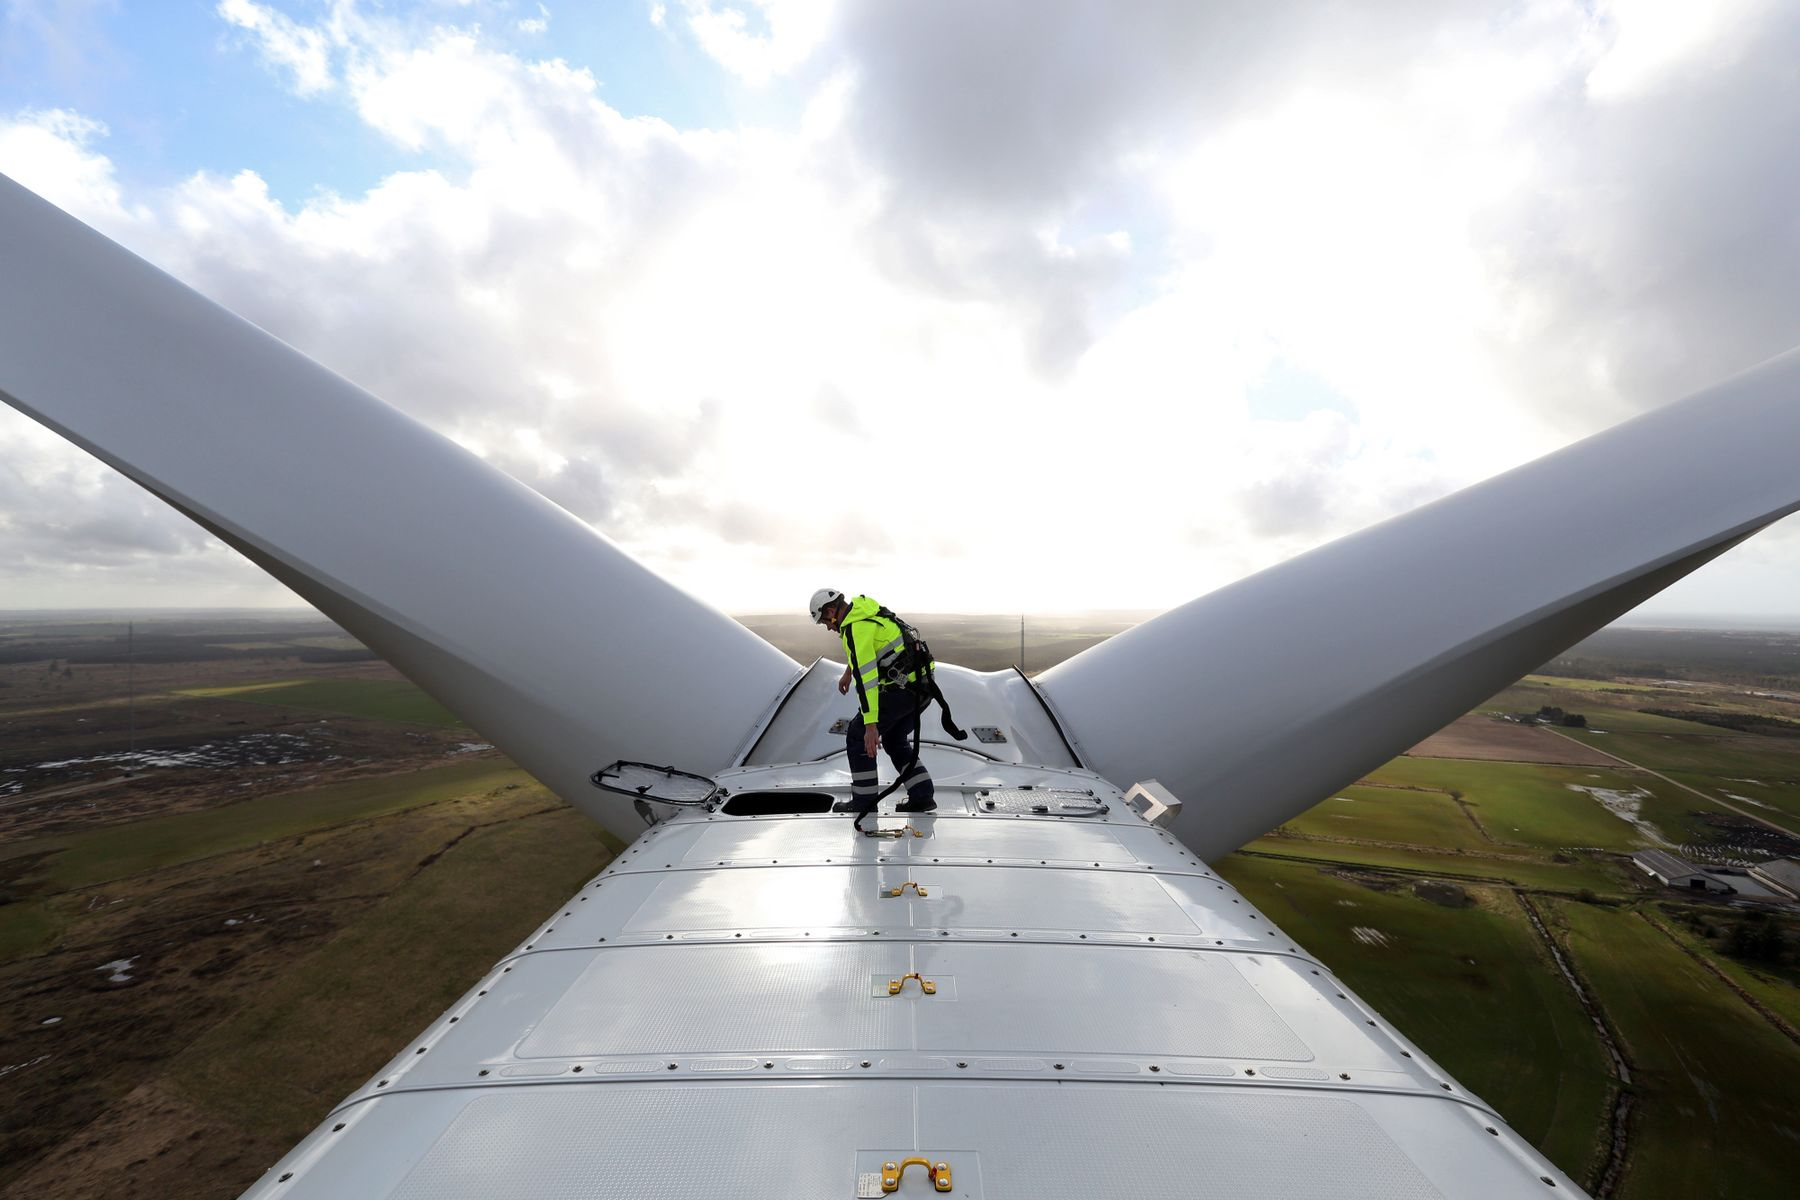 An employee prepares to exit the nacelle of a Vestas V136 wind turbine in Osterild, Denmark.